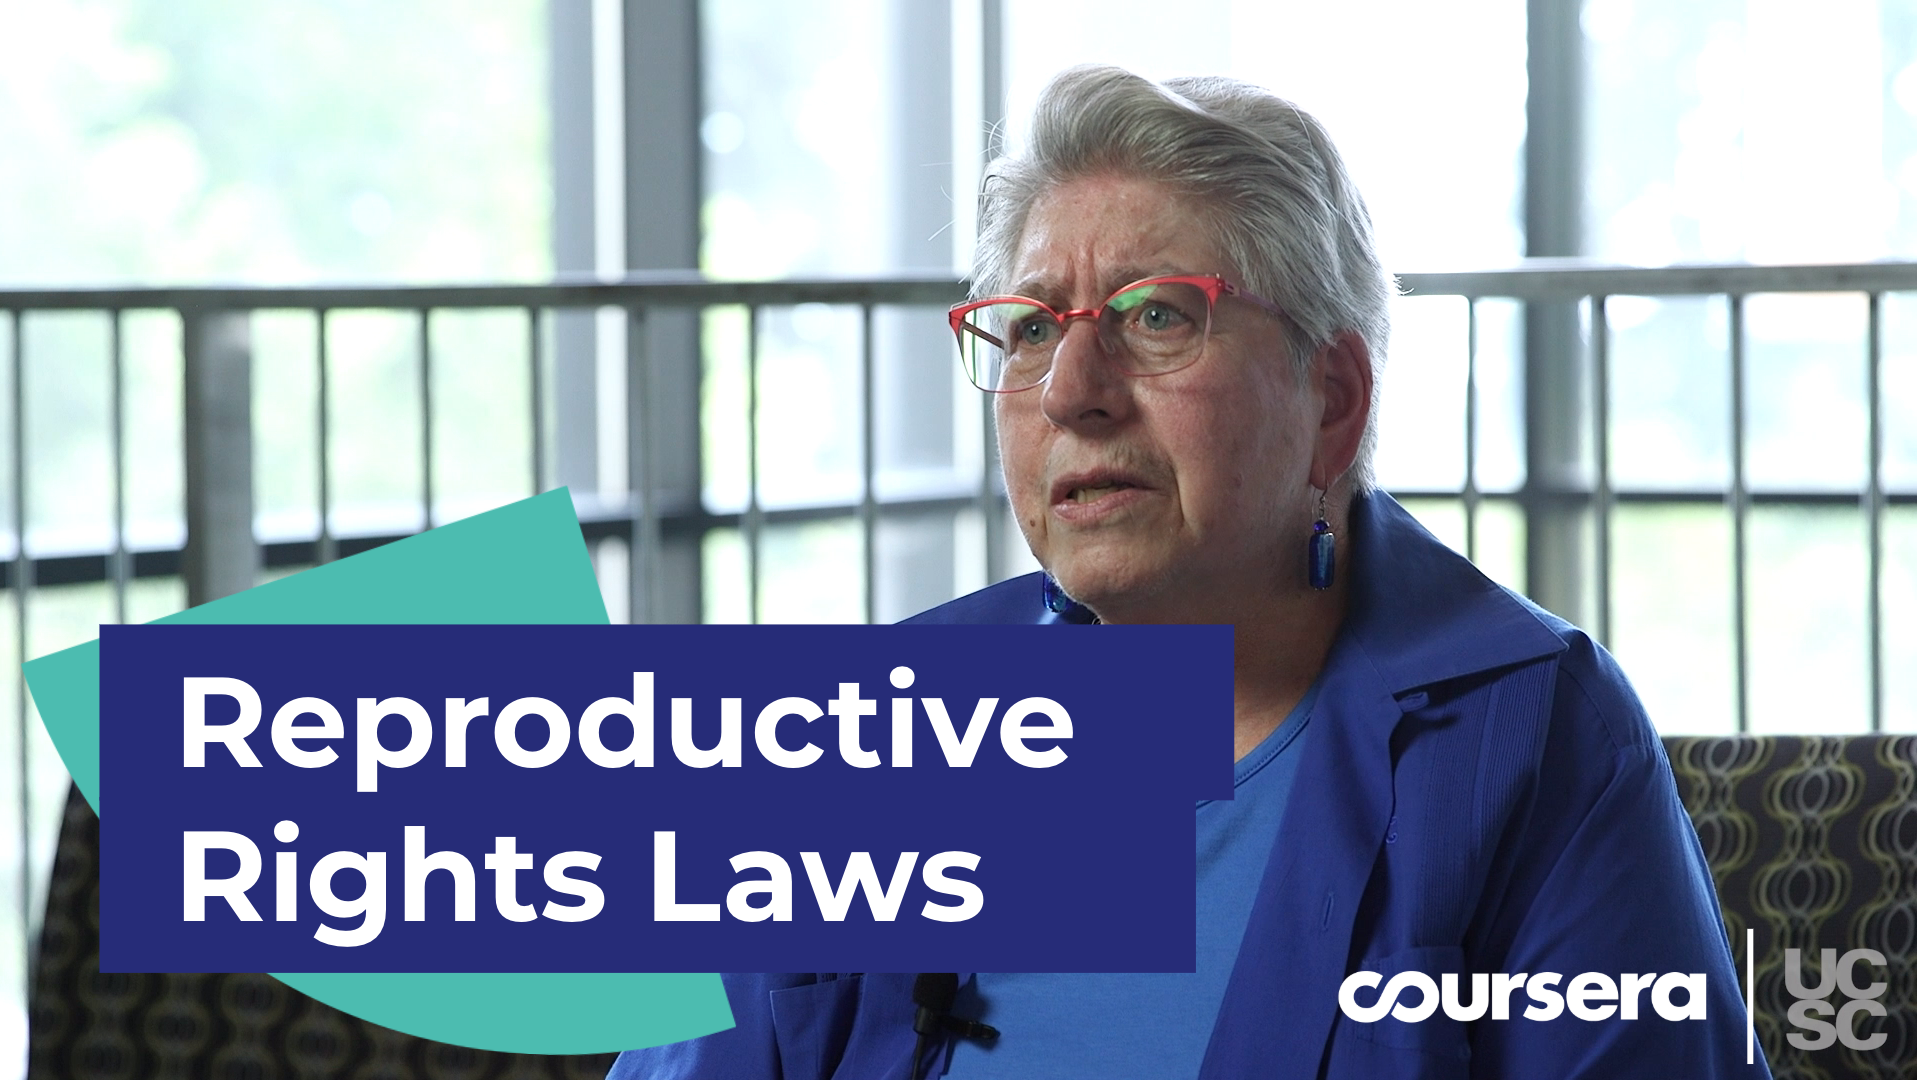 Women's Reproductive Rights Laws in the United States (2019)